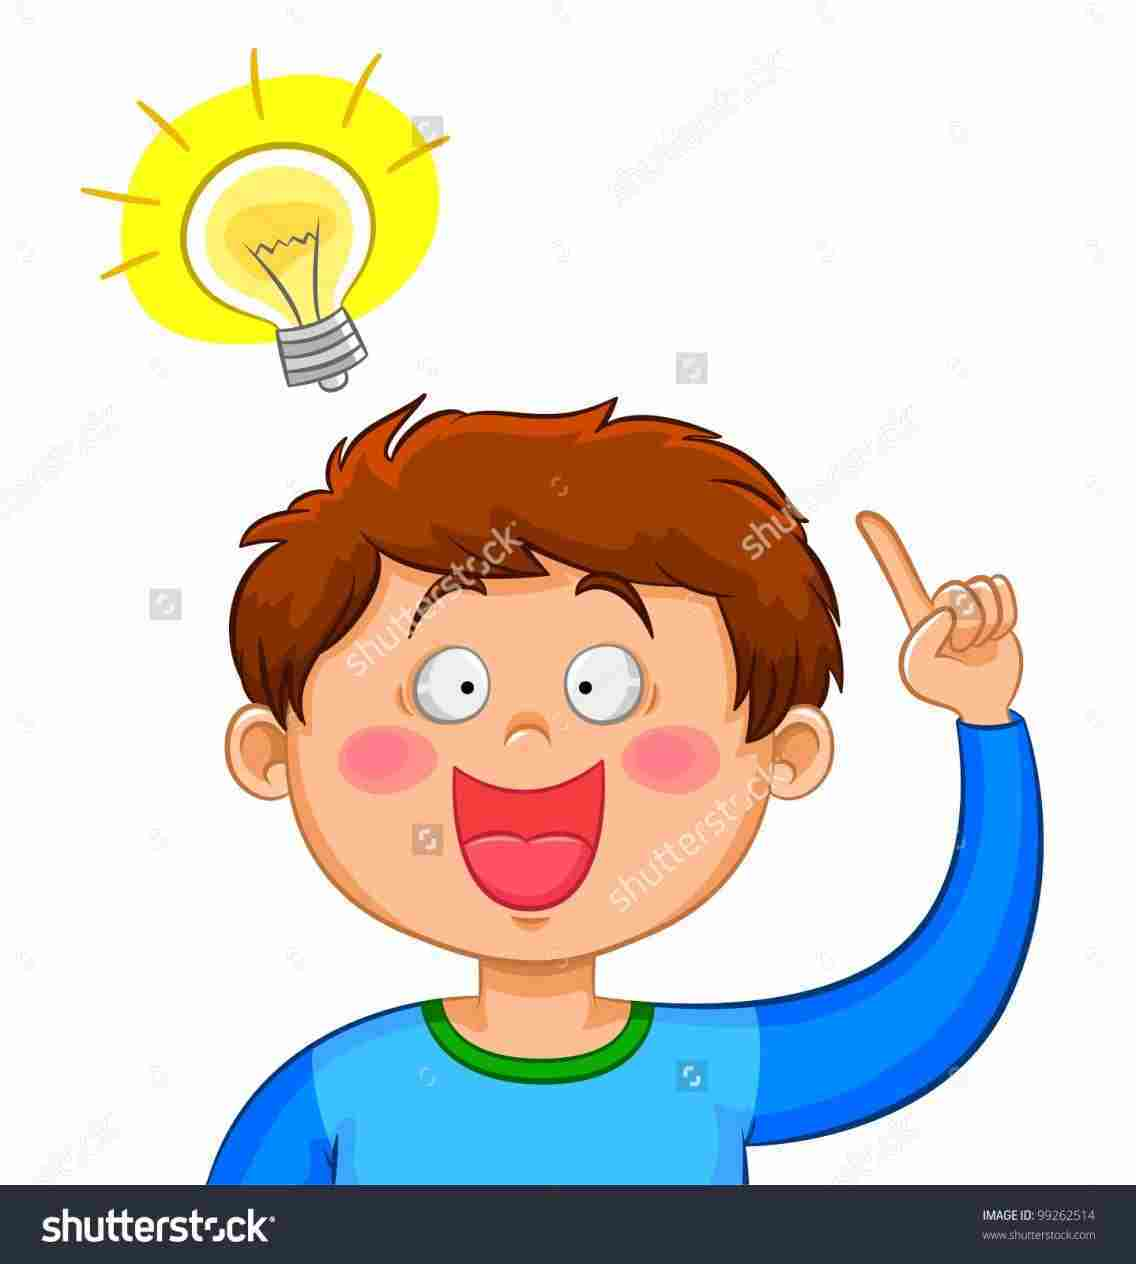 Children thinking clipart 2 » Clipart Portal black and white library